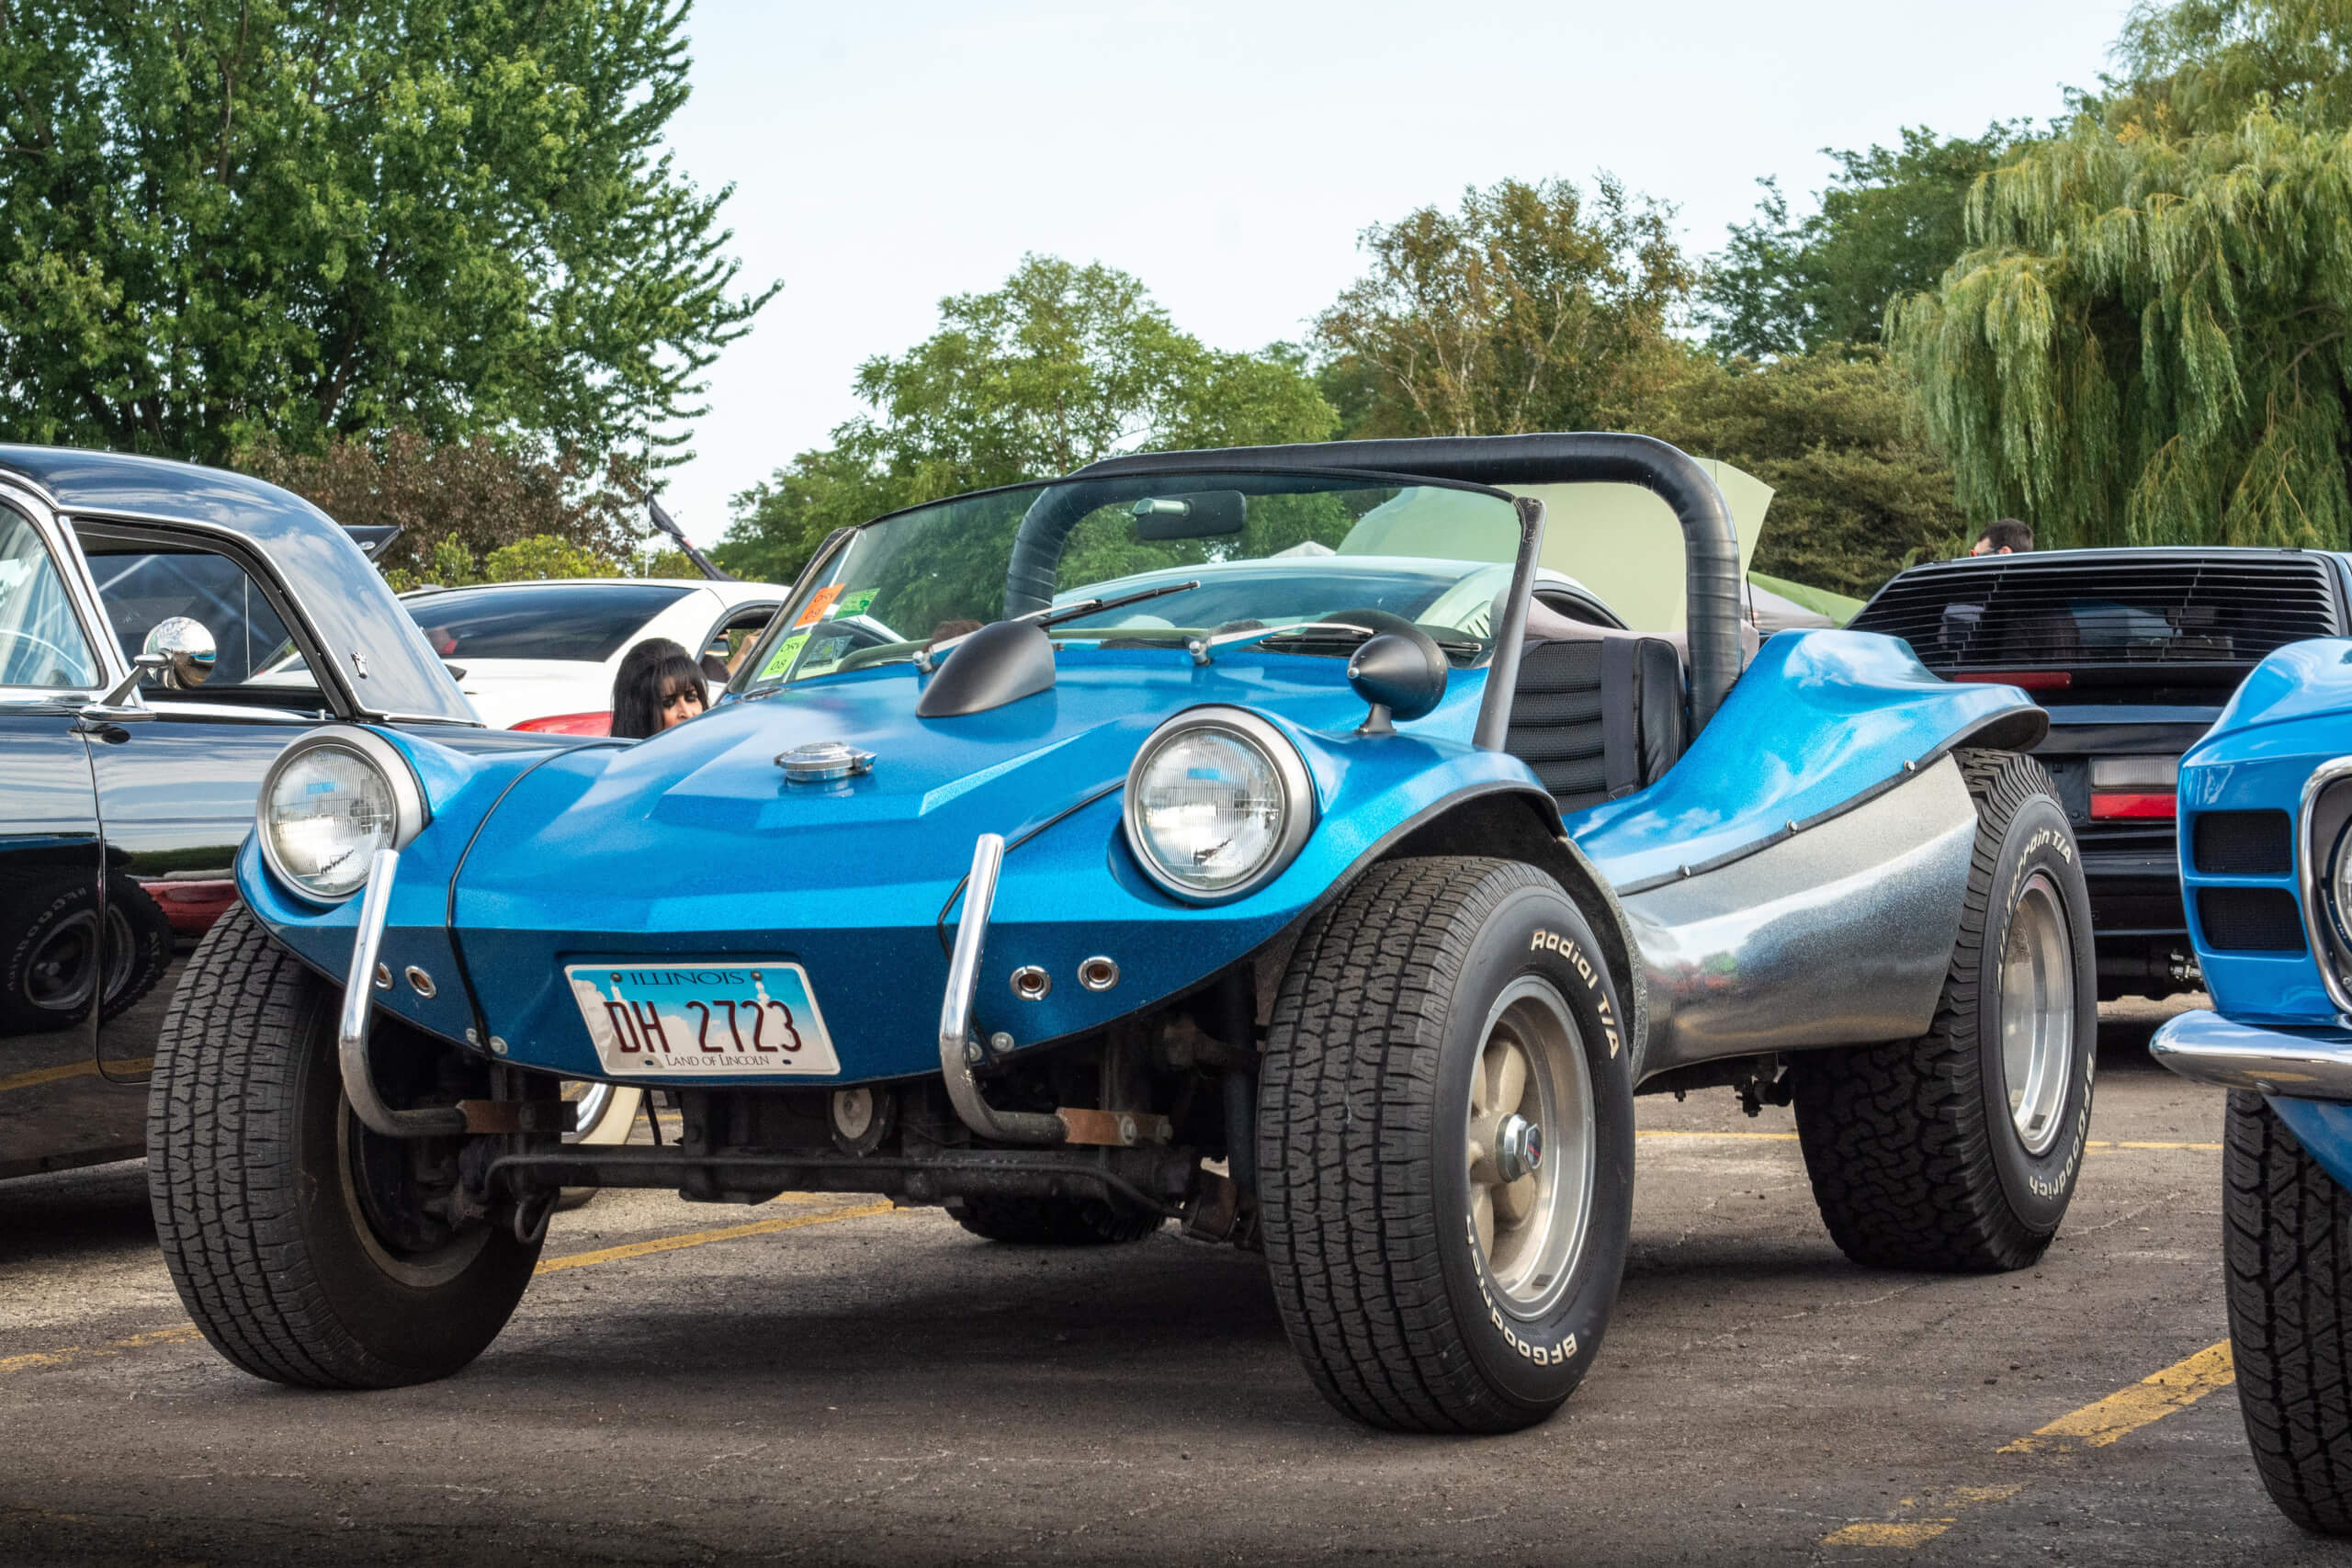 This dune buggy is on a 1966 VW Beetle chassis and uses a Bounty Hunter fiberglass body.